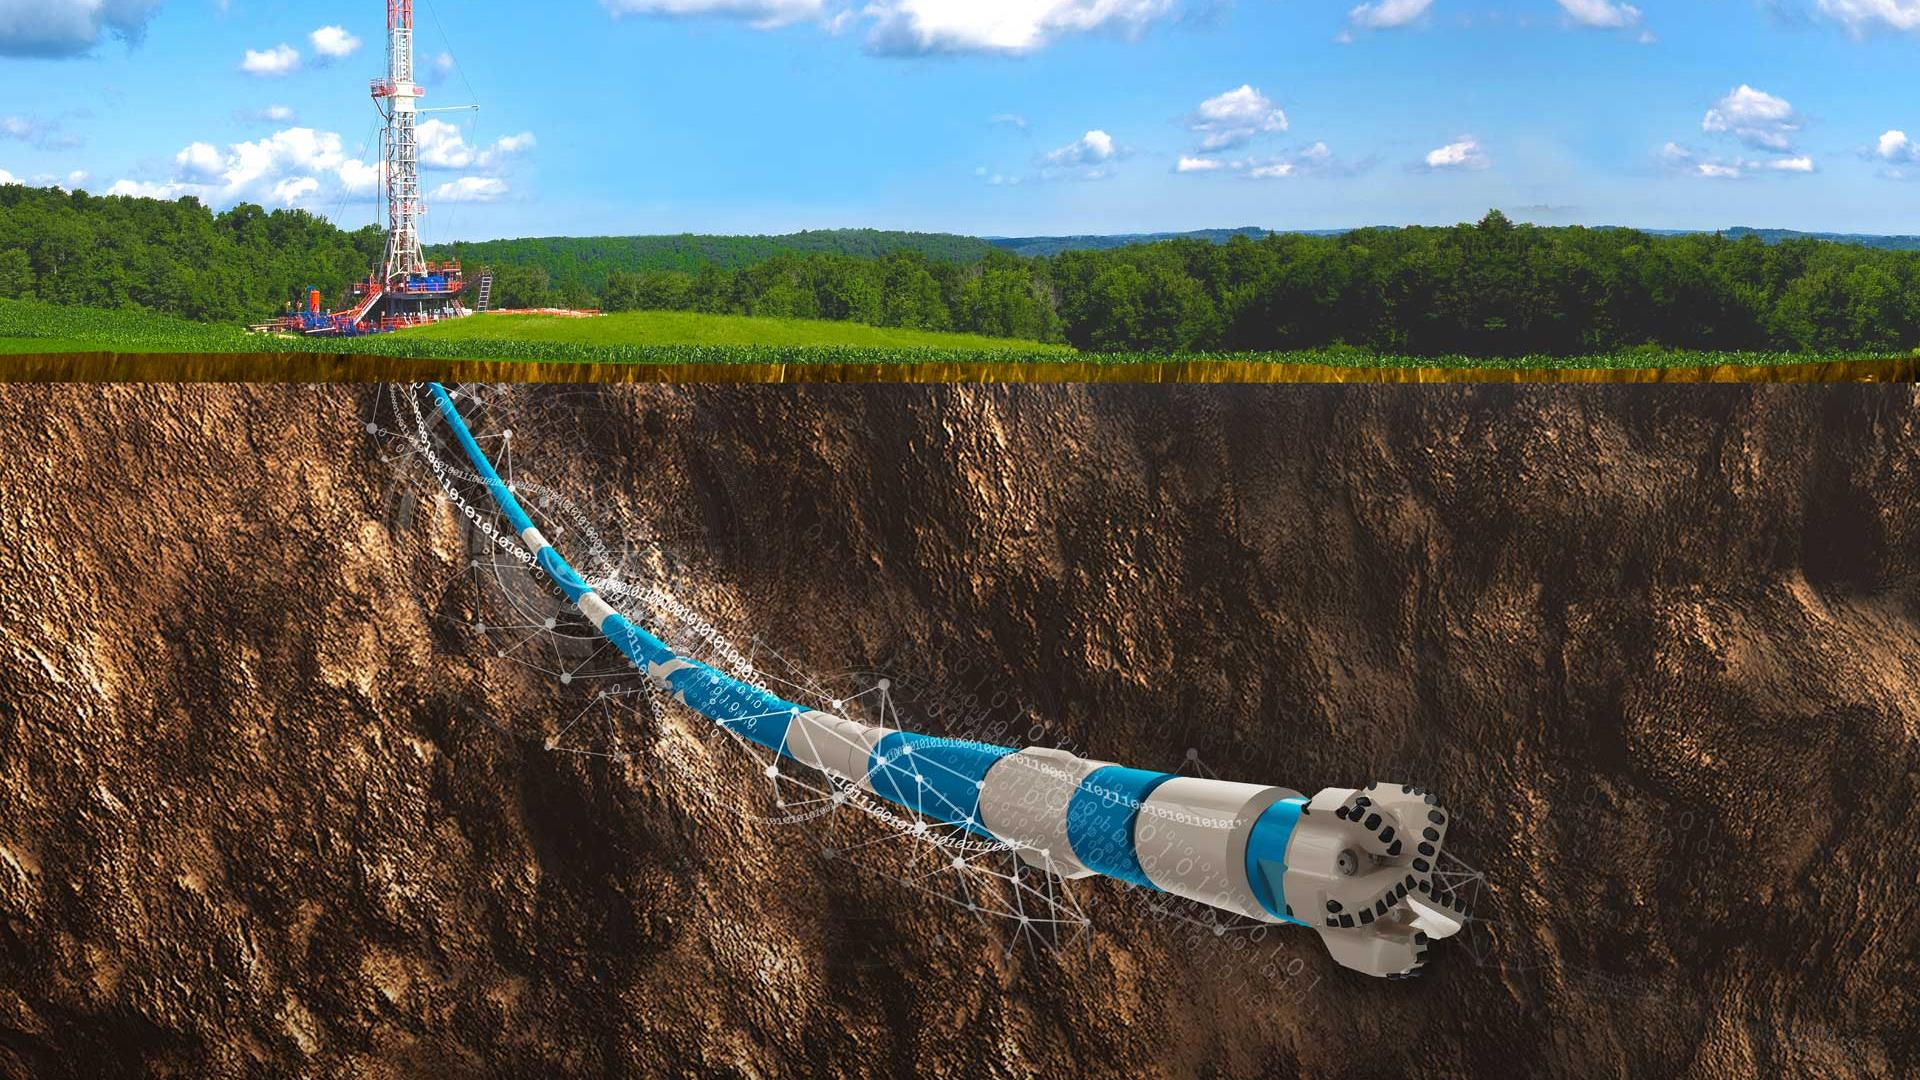 eVolve AUTOMATE drilling through the earth